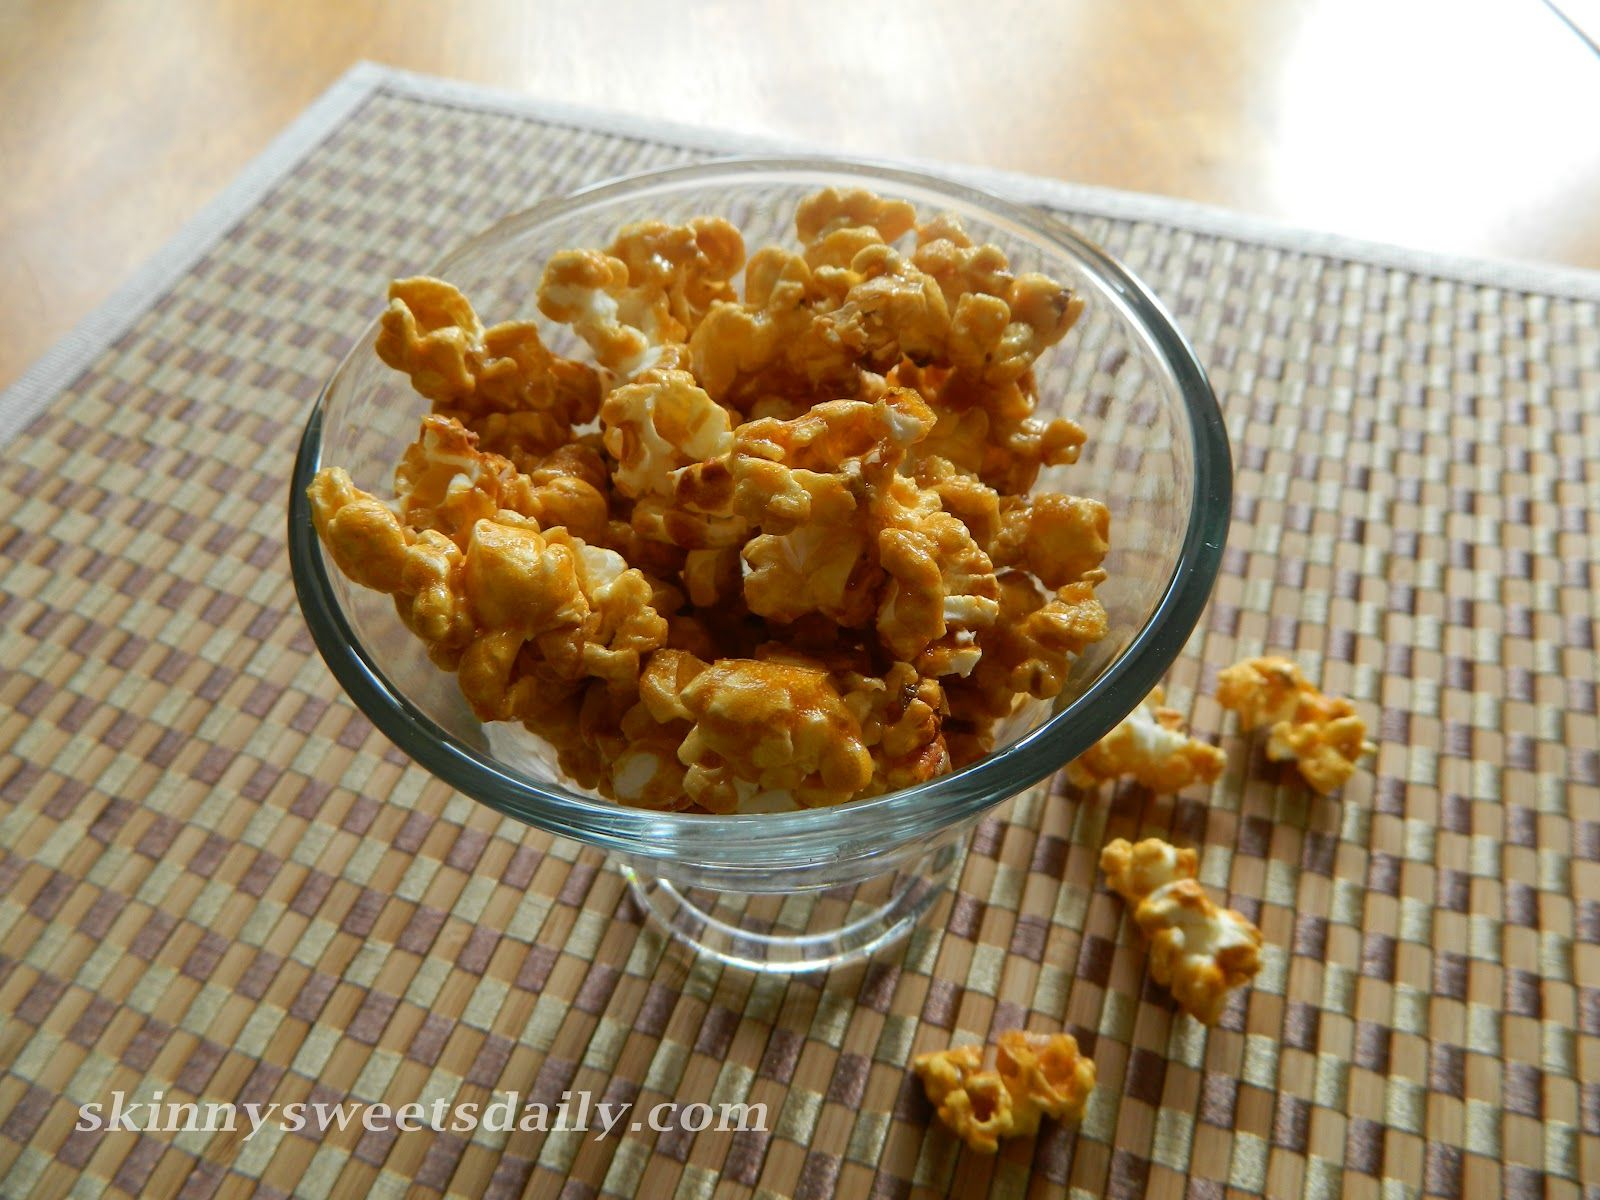 Skinny Sweets Daily: Skinny Caramel Popcorn! Enjoy this great treat without the guilt! So yummy, it's sure to be a big hit! Click pic for recipe.